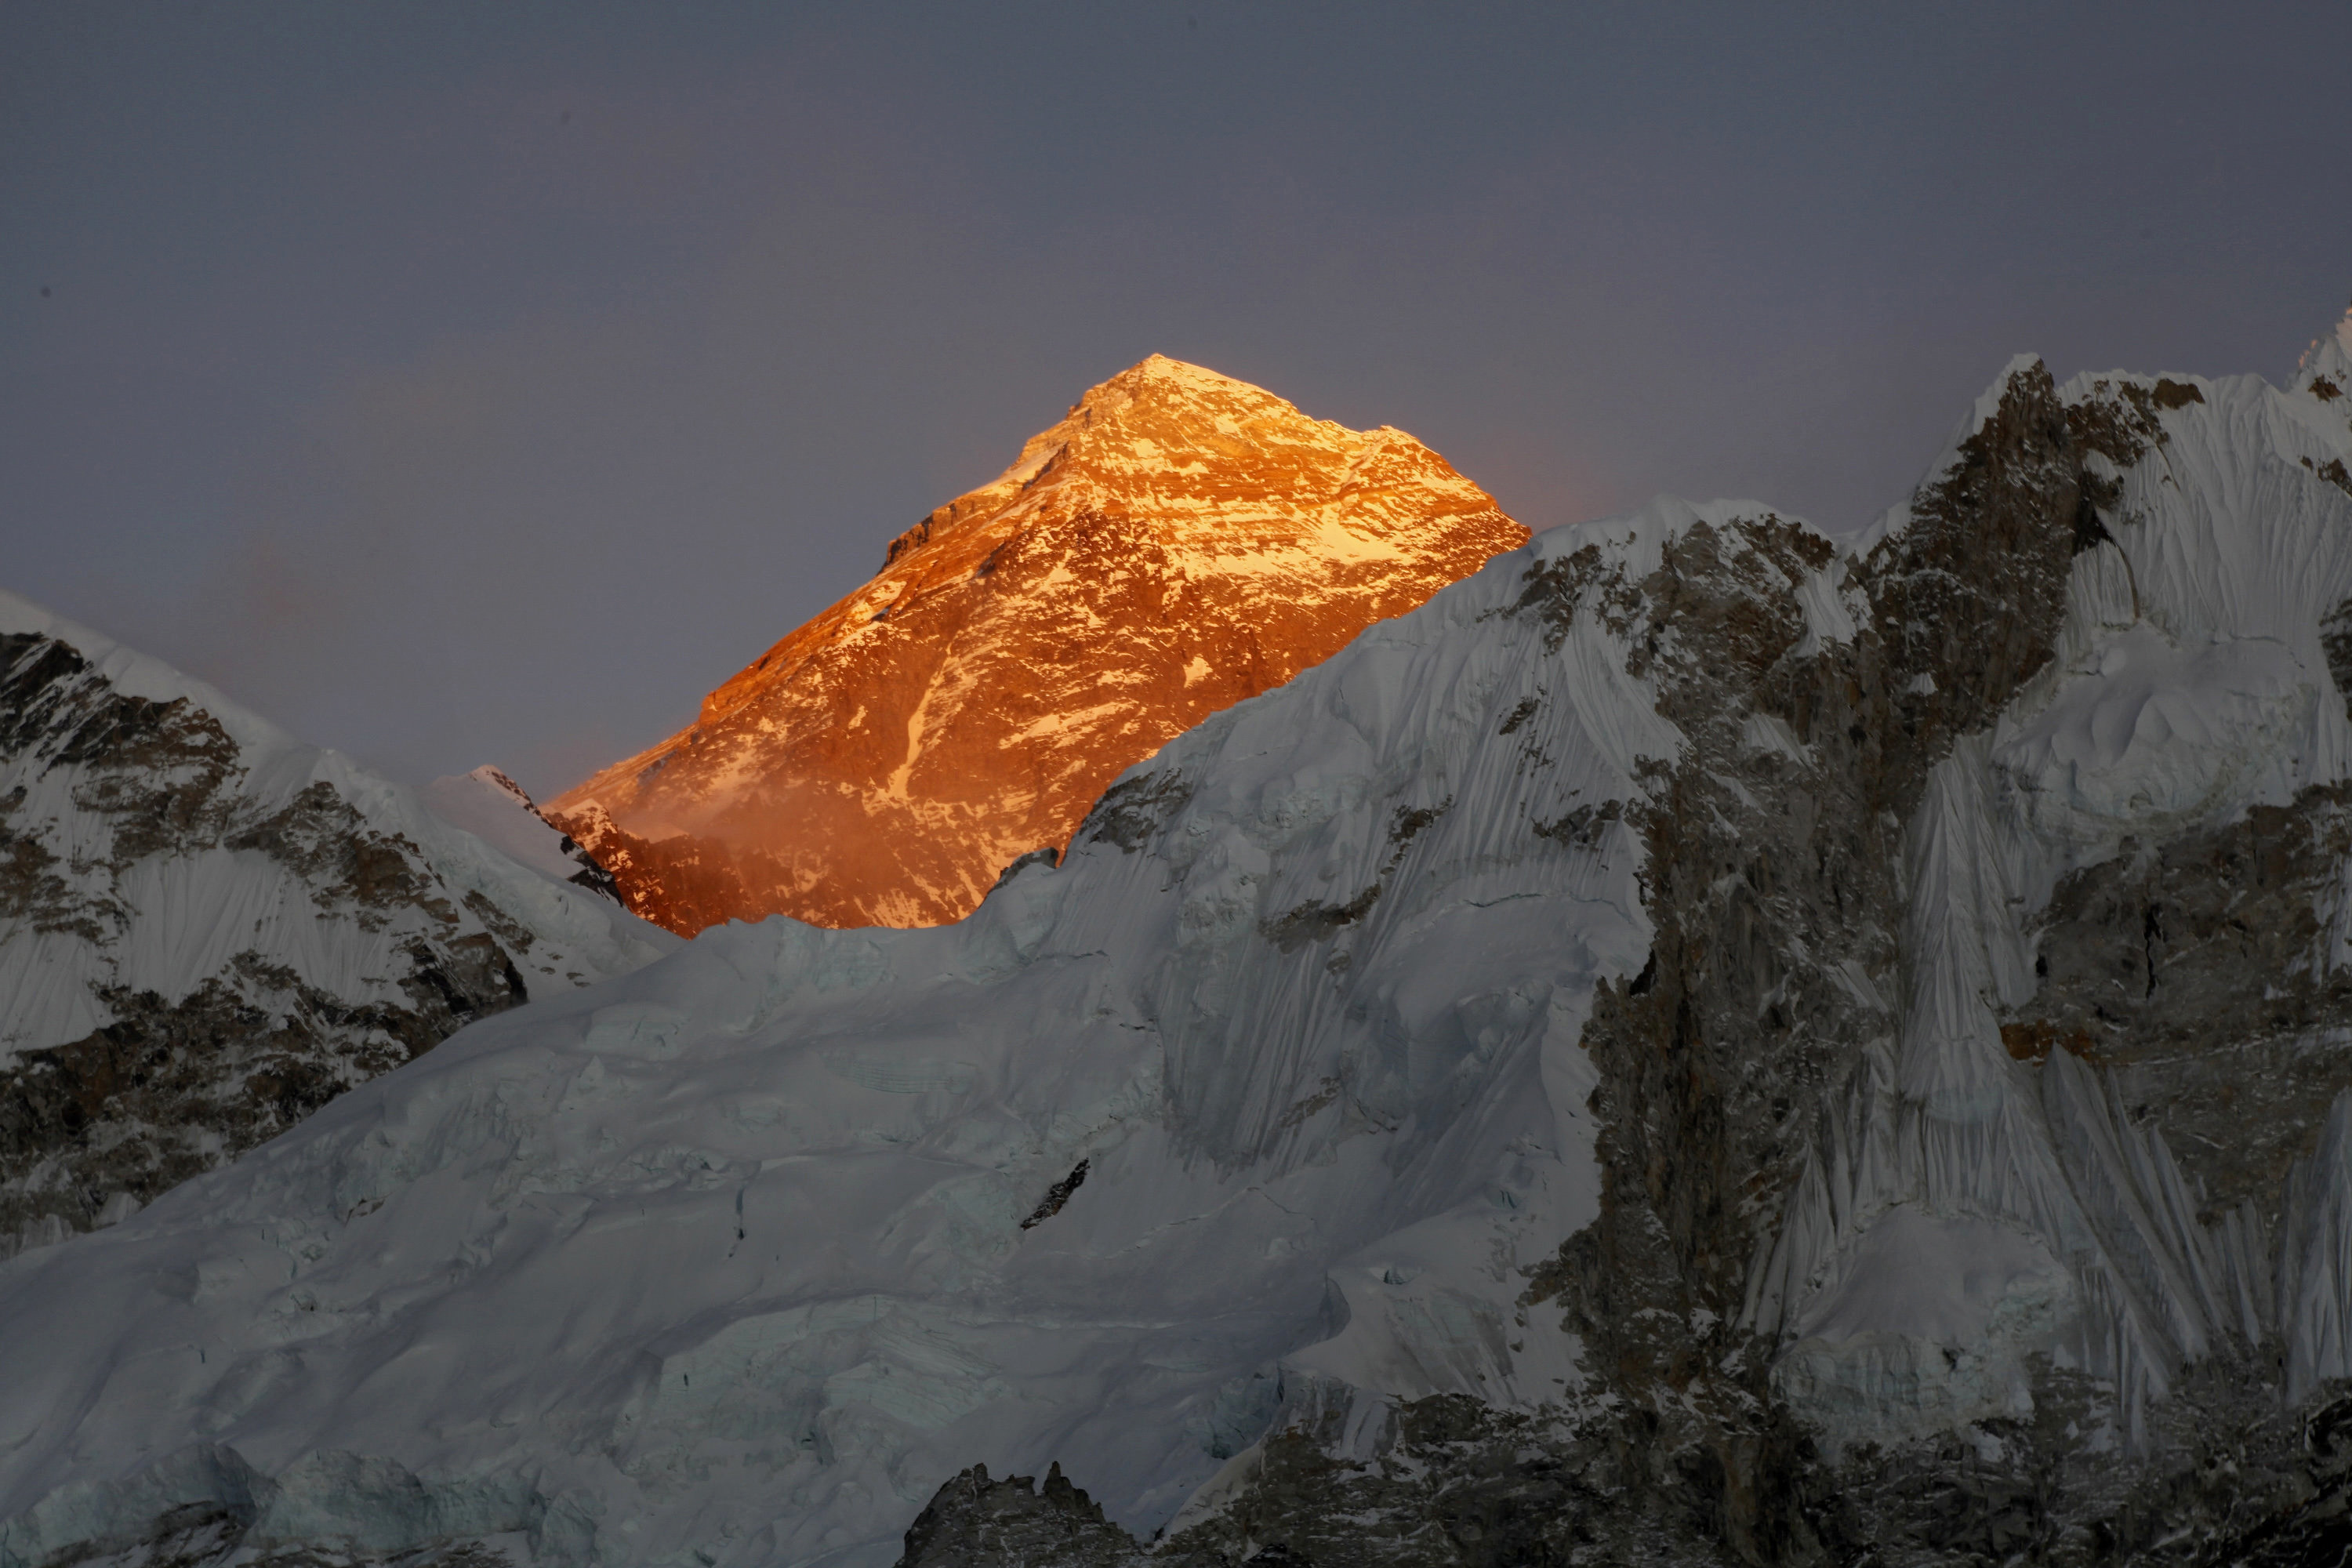 Mt. Everest is seen from the way to Kalapatthar in Nepal. An American climber has died near the summit of Mount Everest and an Indian climber is missing after heading down from the mountain following a successful ascent, expedition organizers said Sunday. (AP Photo/Tashi Sherpa, File)